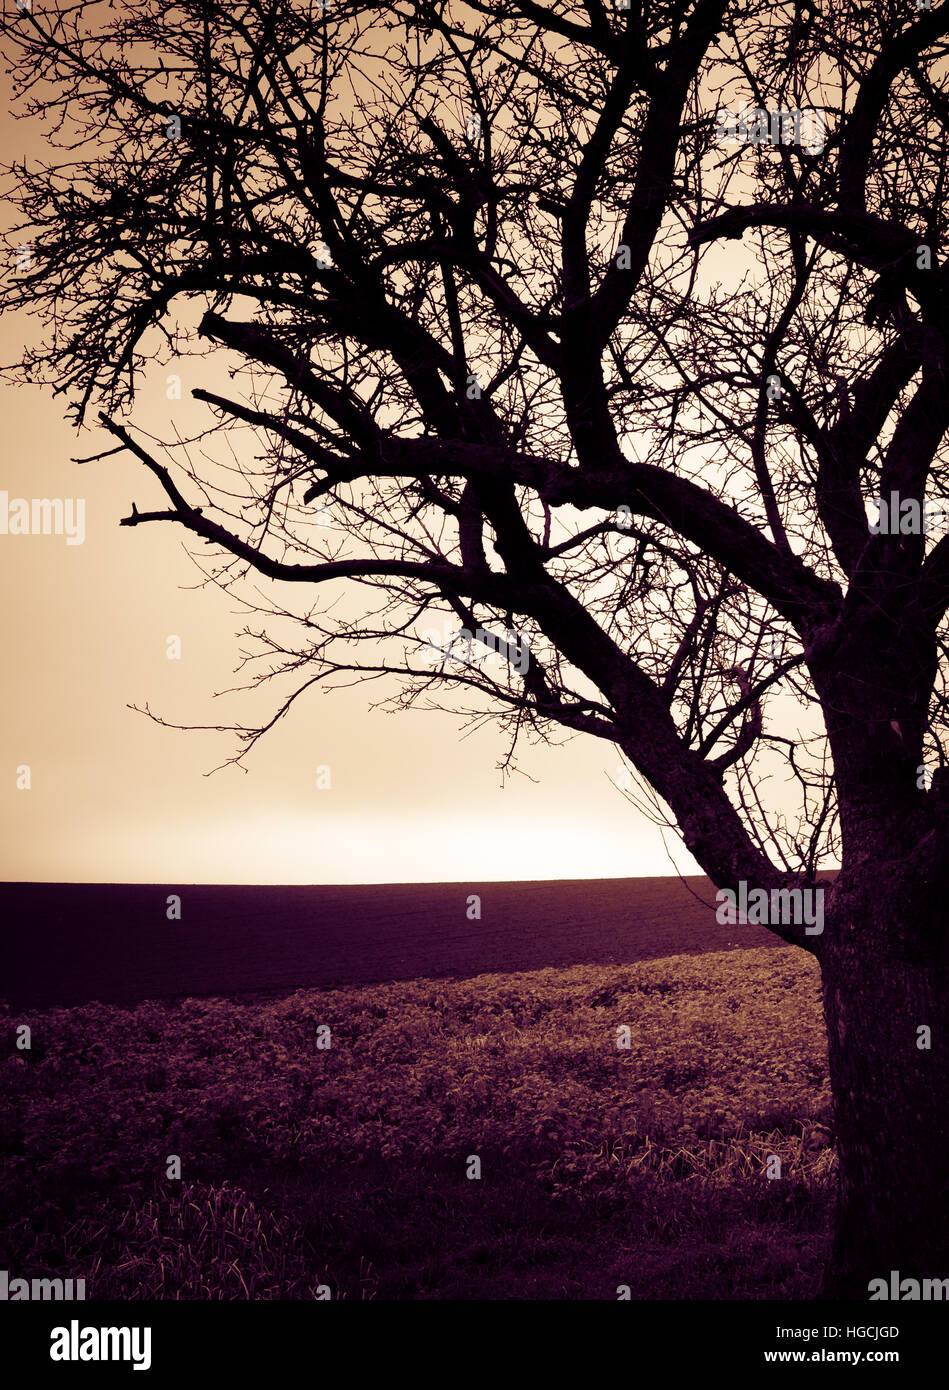 Landscape with a lonely tree - Stock Image